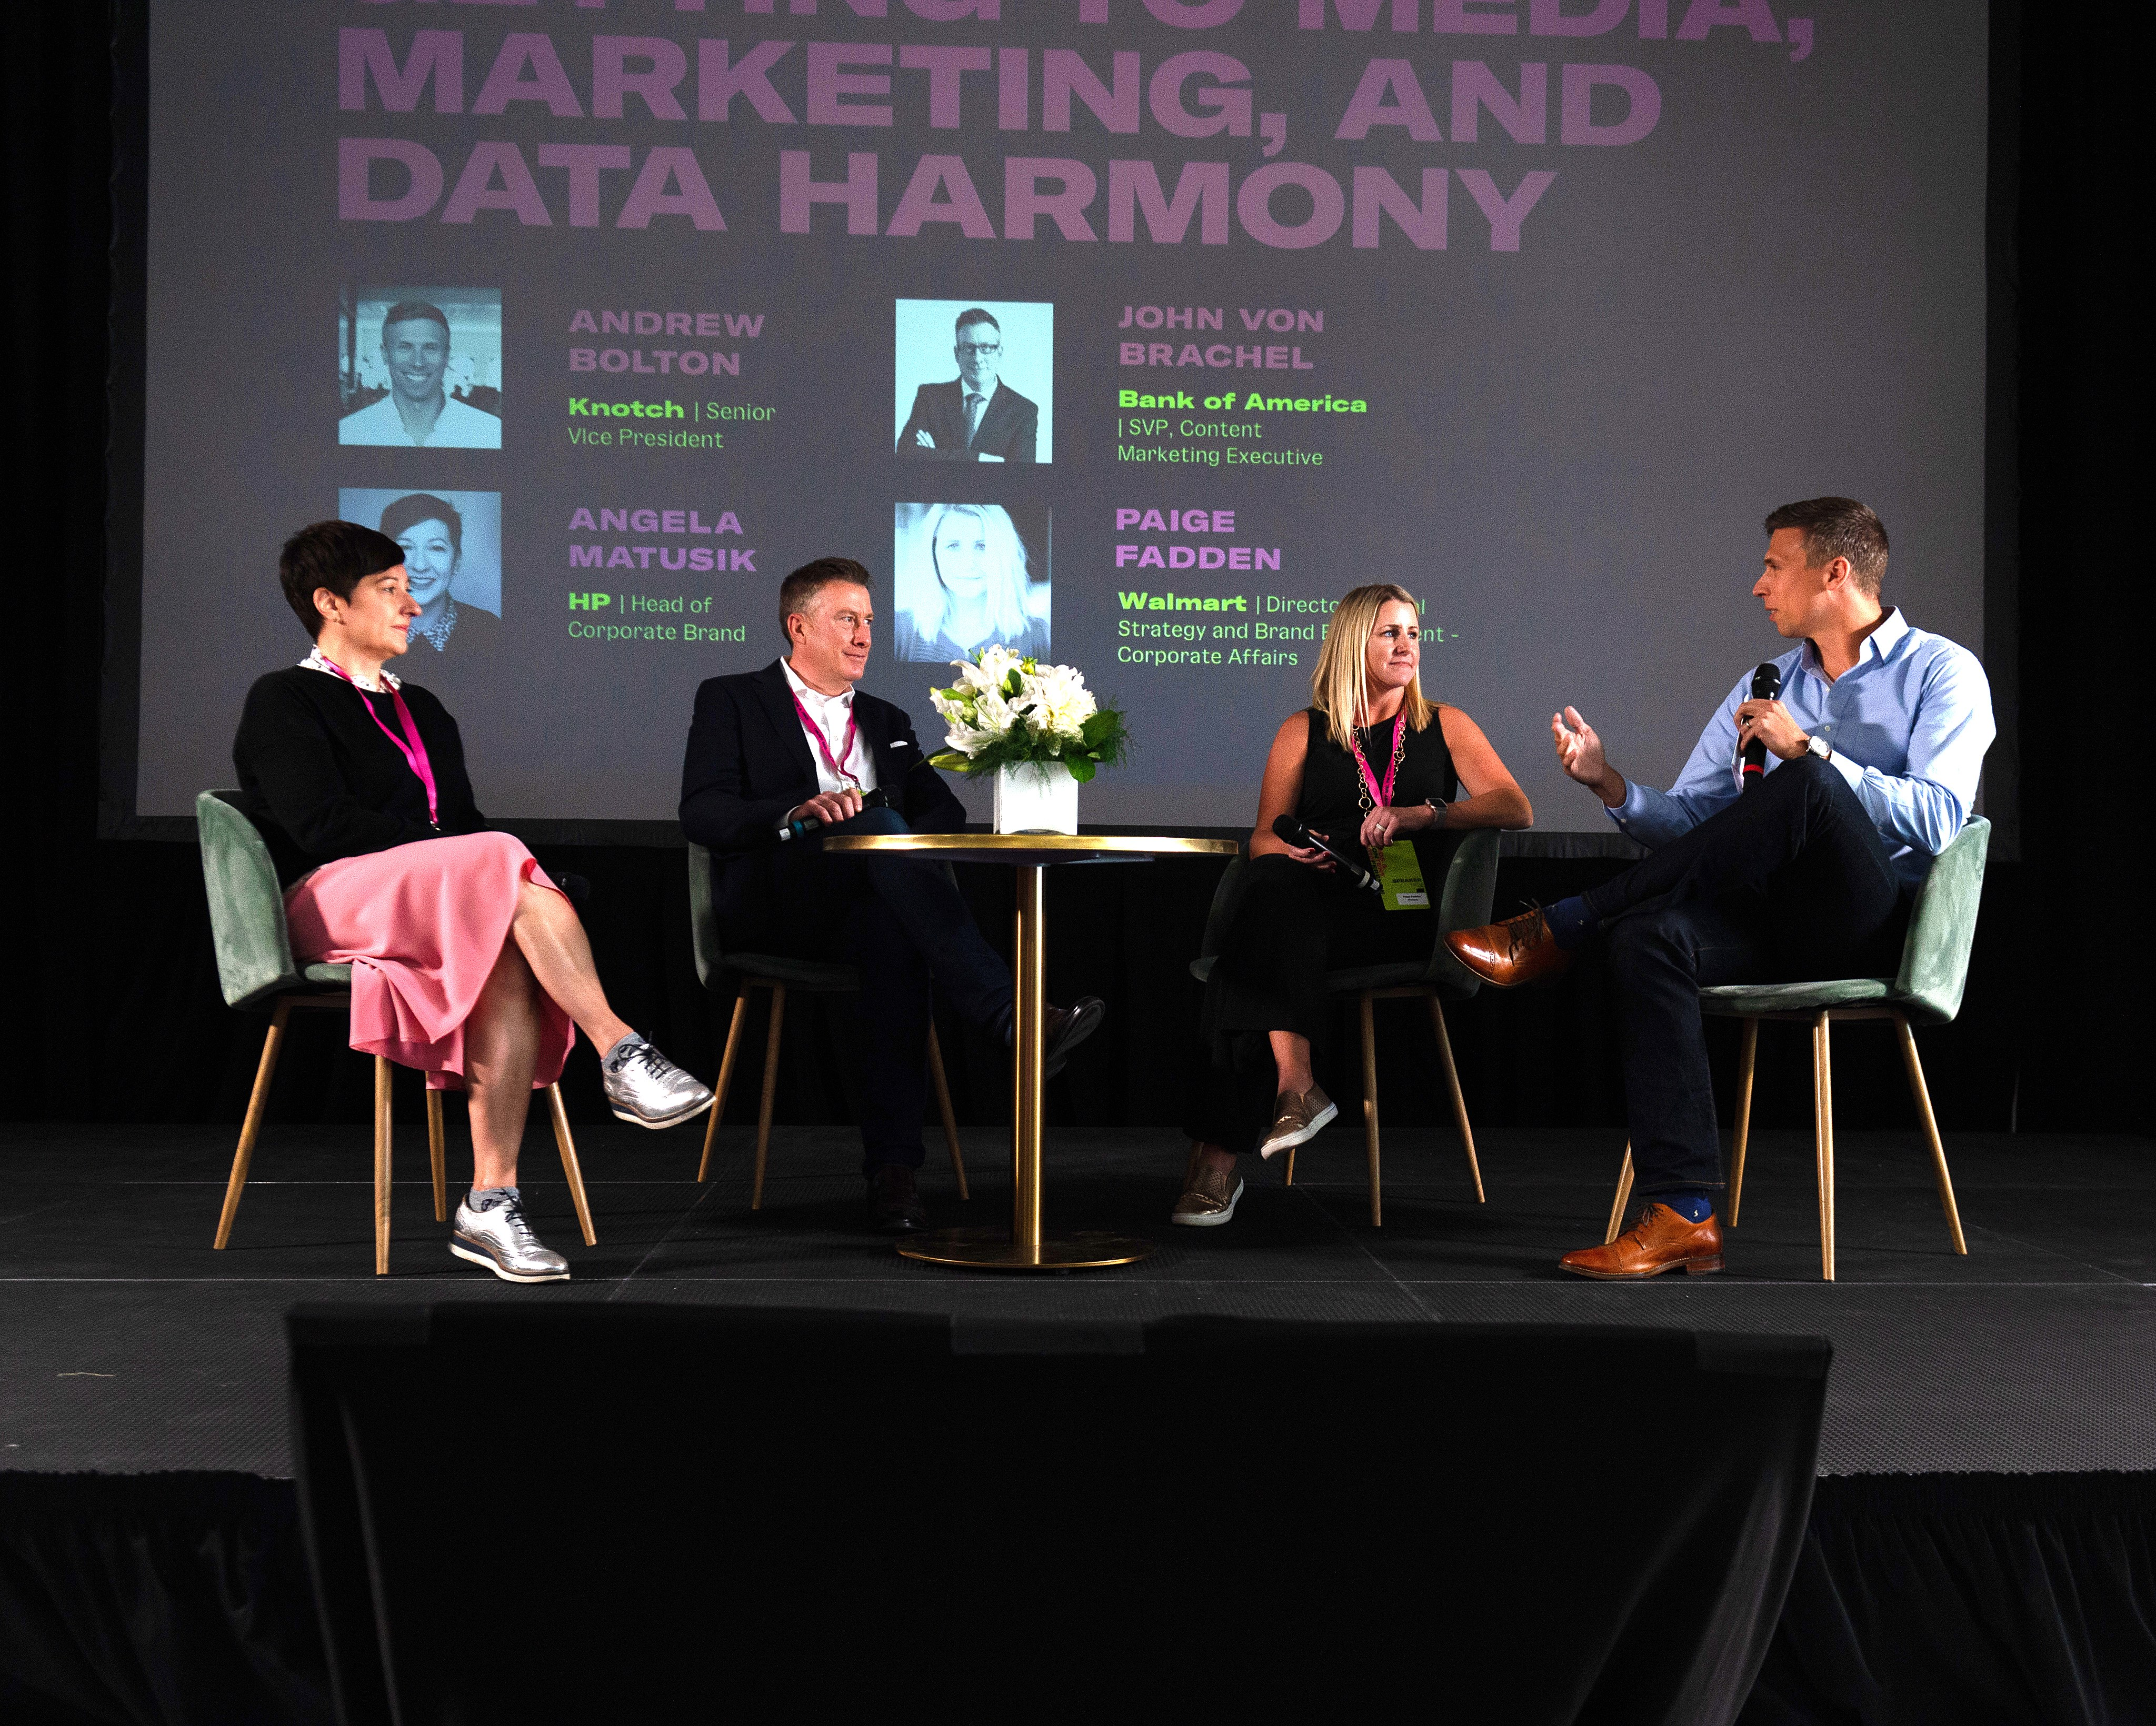 Getting to Media, Marketing, and Data Harmony - Pros & Content Conference 2019: